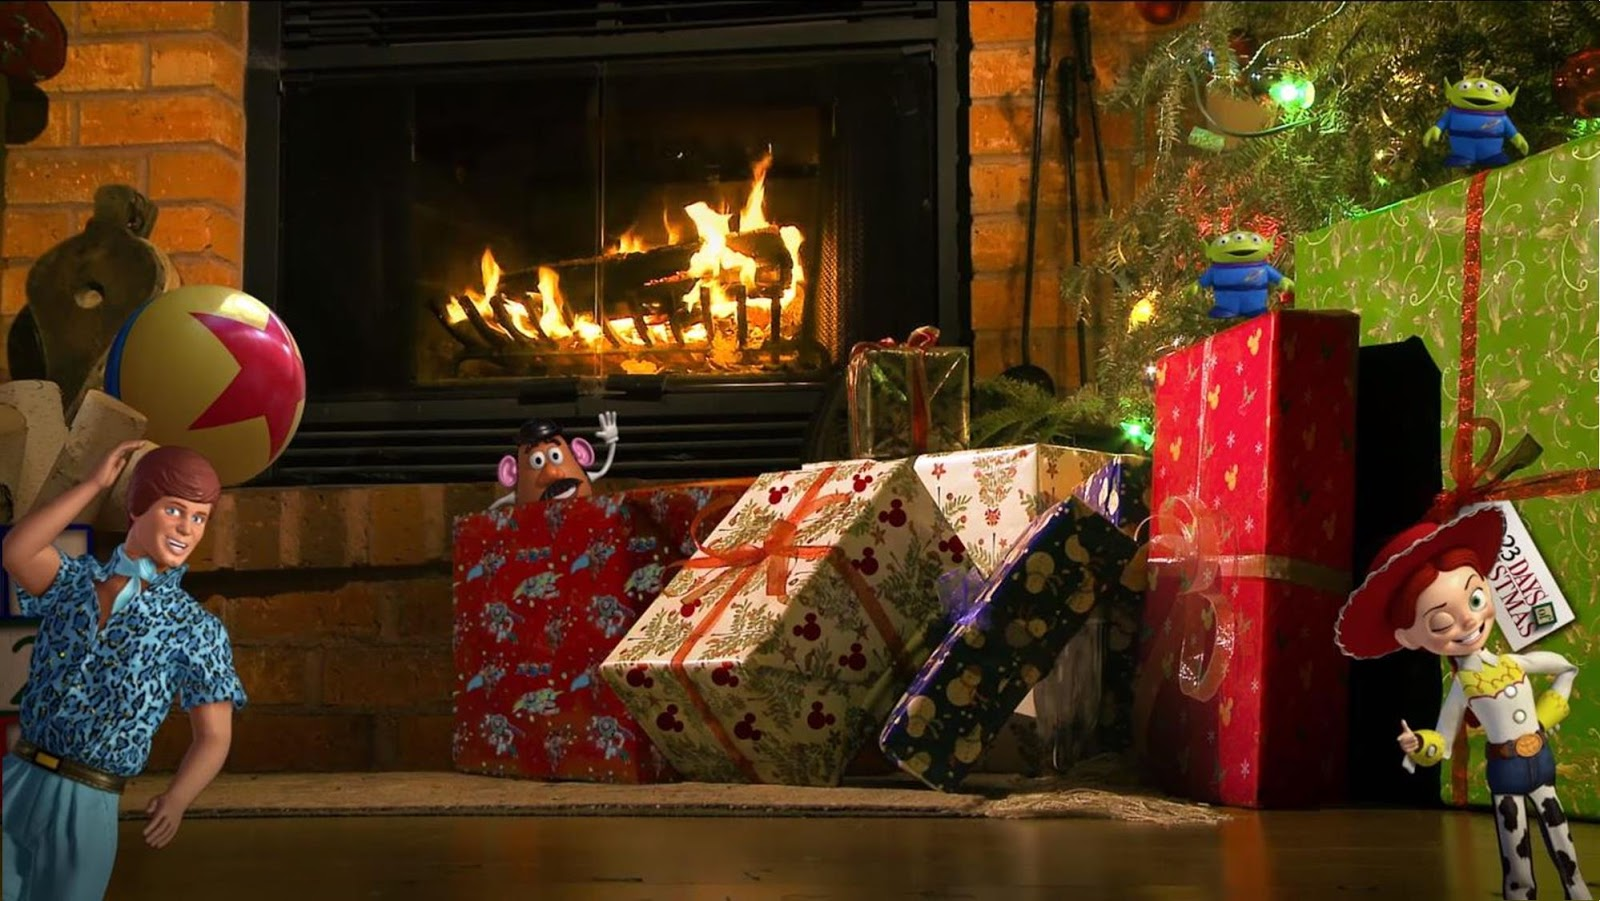 Looking For the Perfect Fireplace Video This Holiday Season